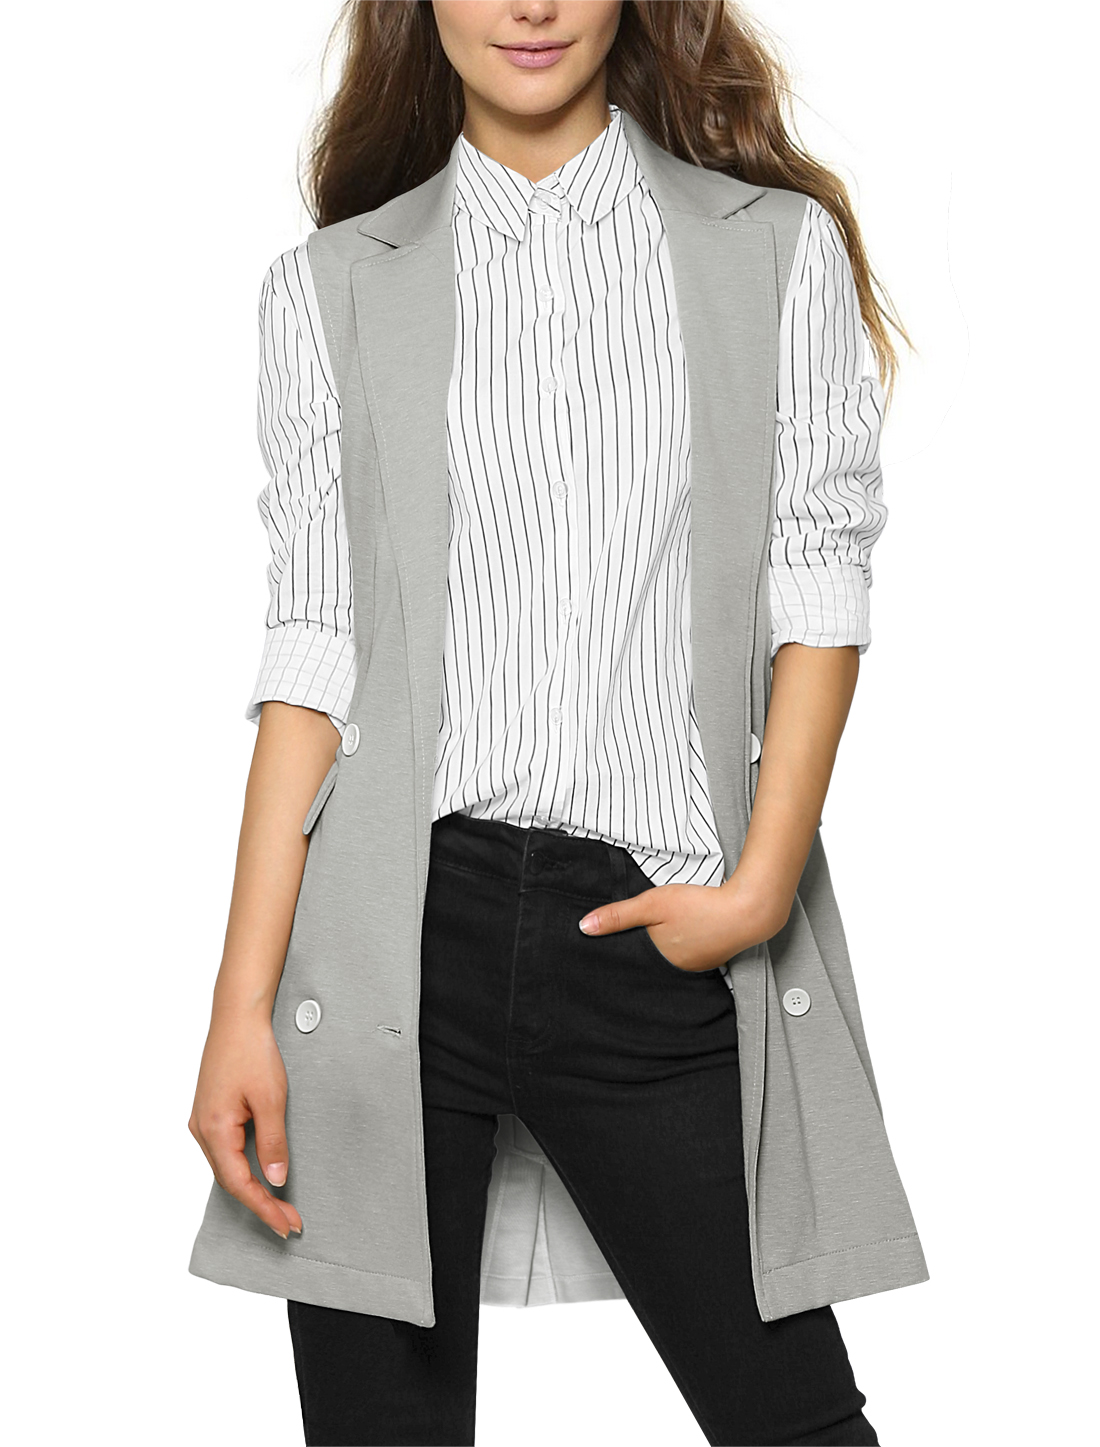 Ladies Sleeveless Vent Back Notched Lapel Long Vest Light Gray XL